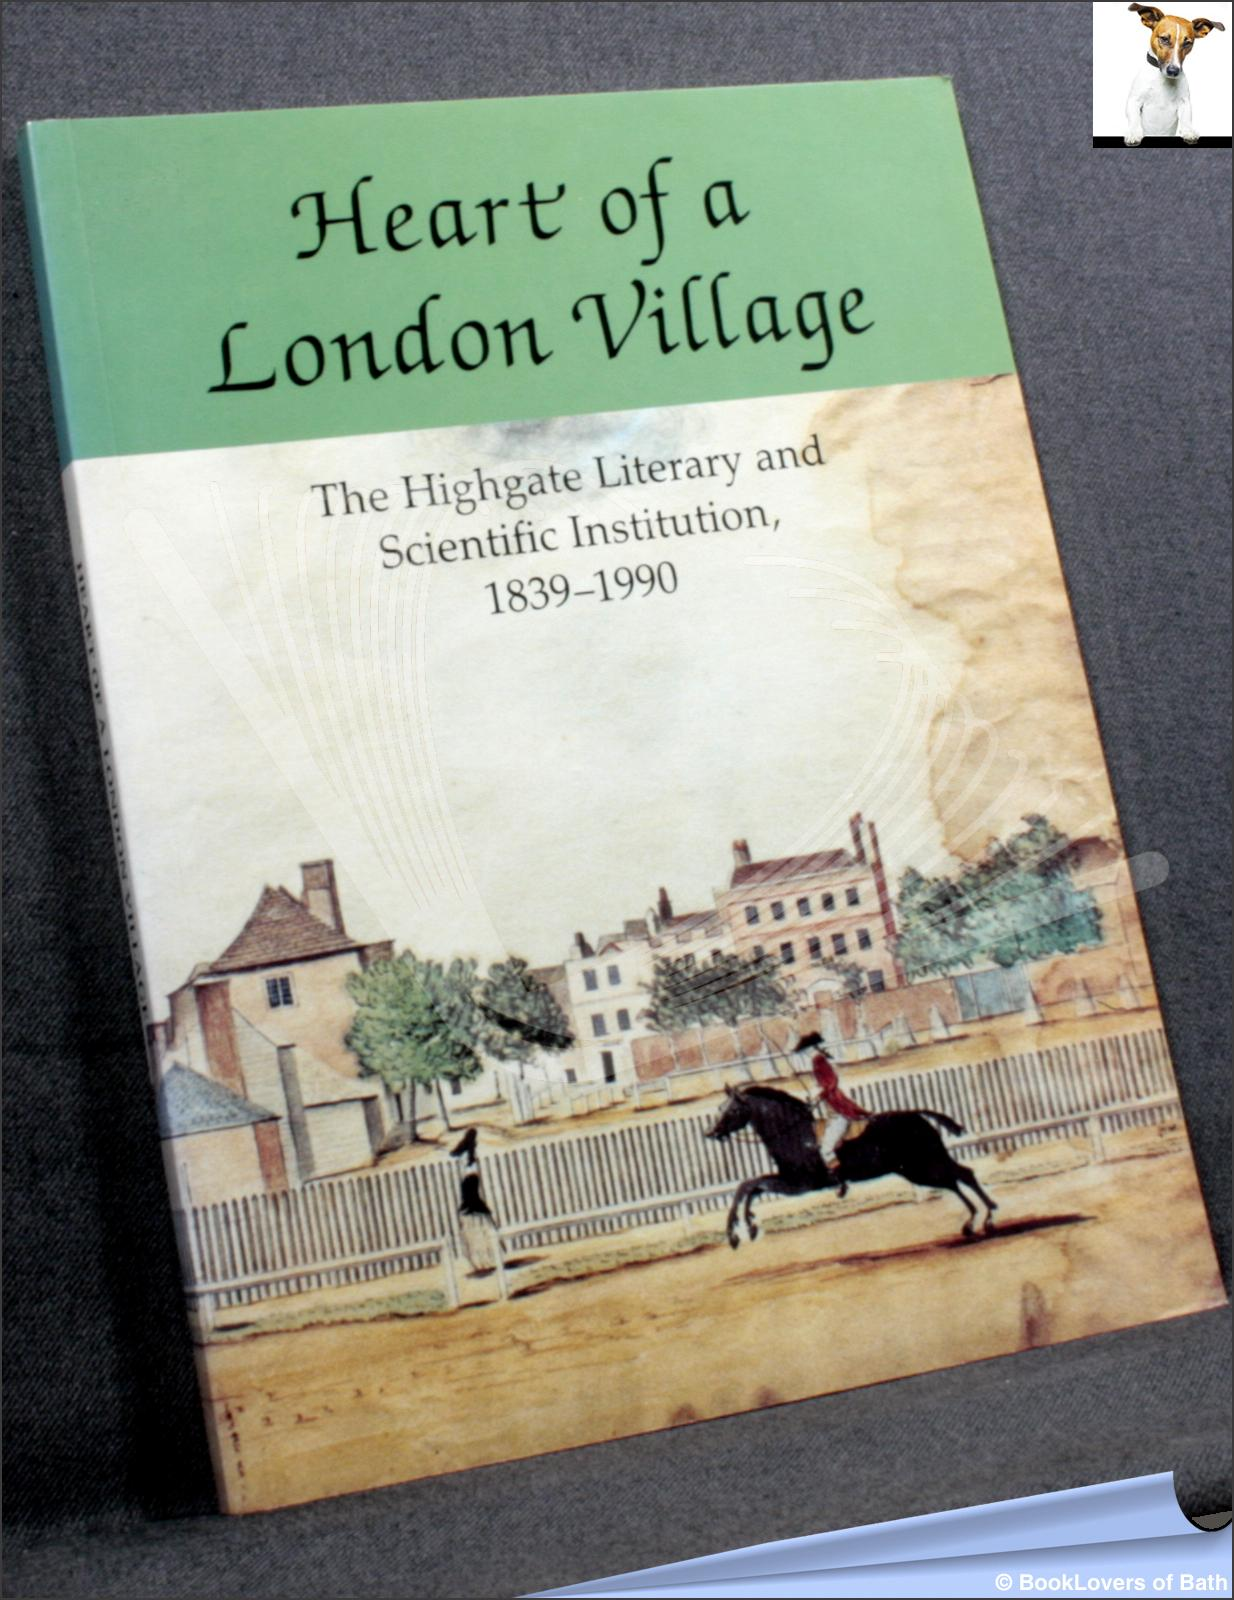 Heart of a London Village: The Highgate Literary and Scientific Institution, 1839-1990 - Members Of The Highgate Literary & Scientific Institution Archives Committee